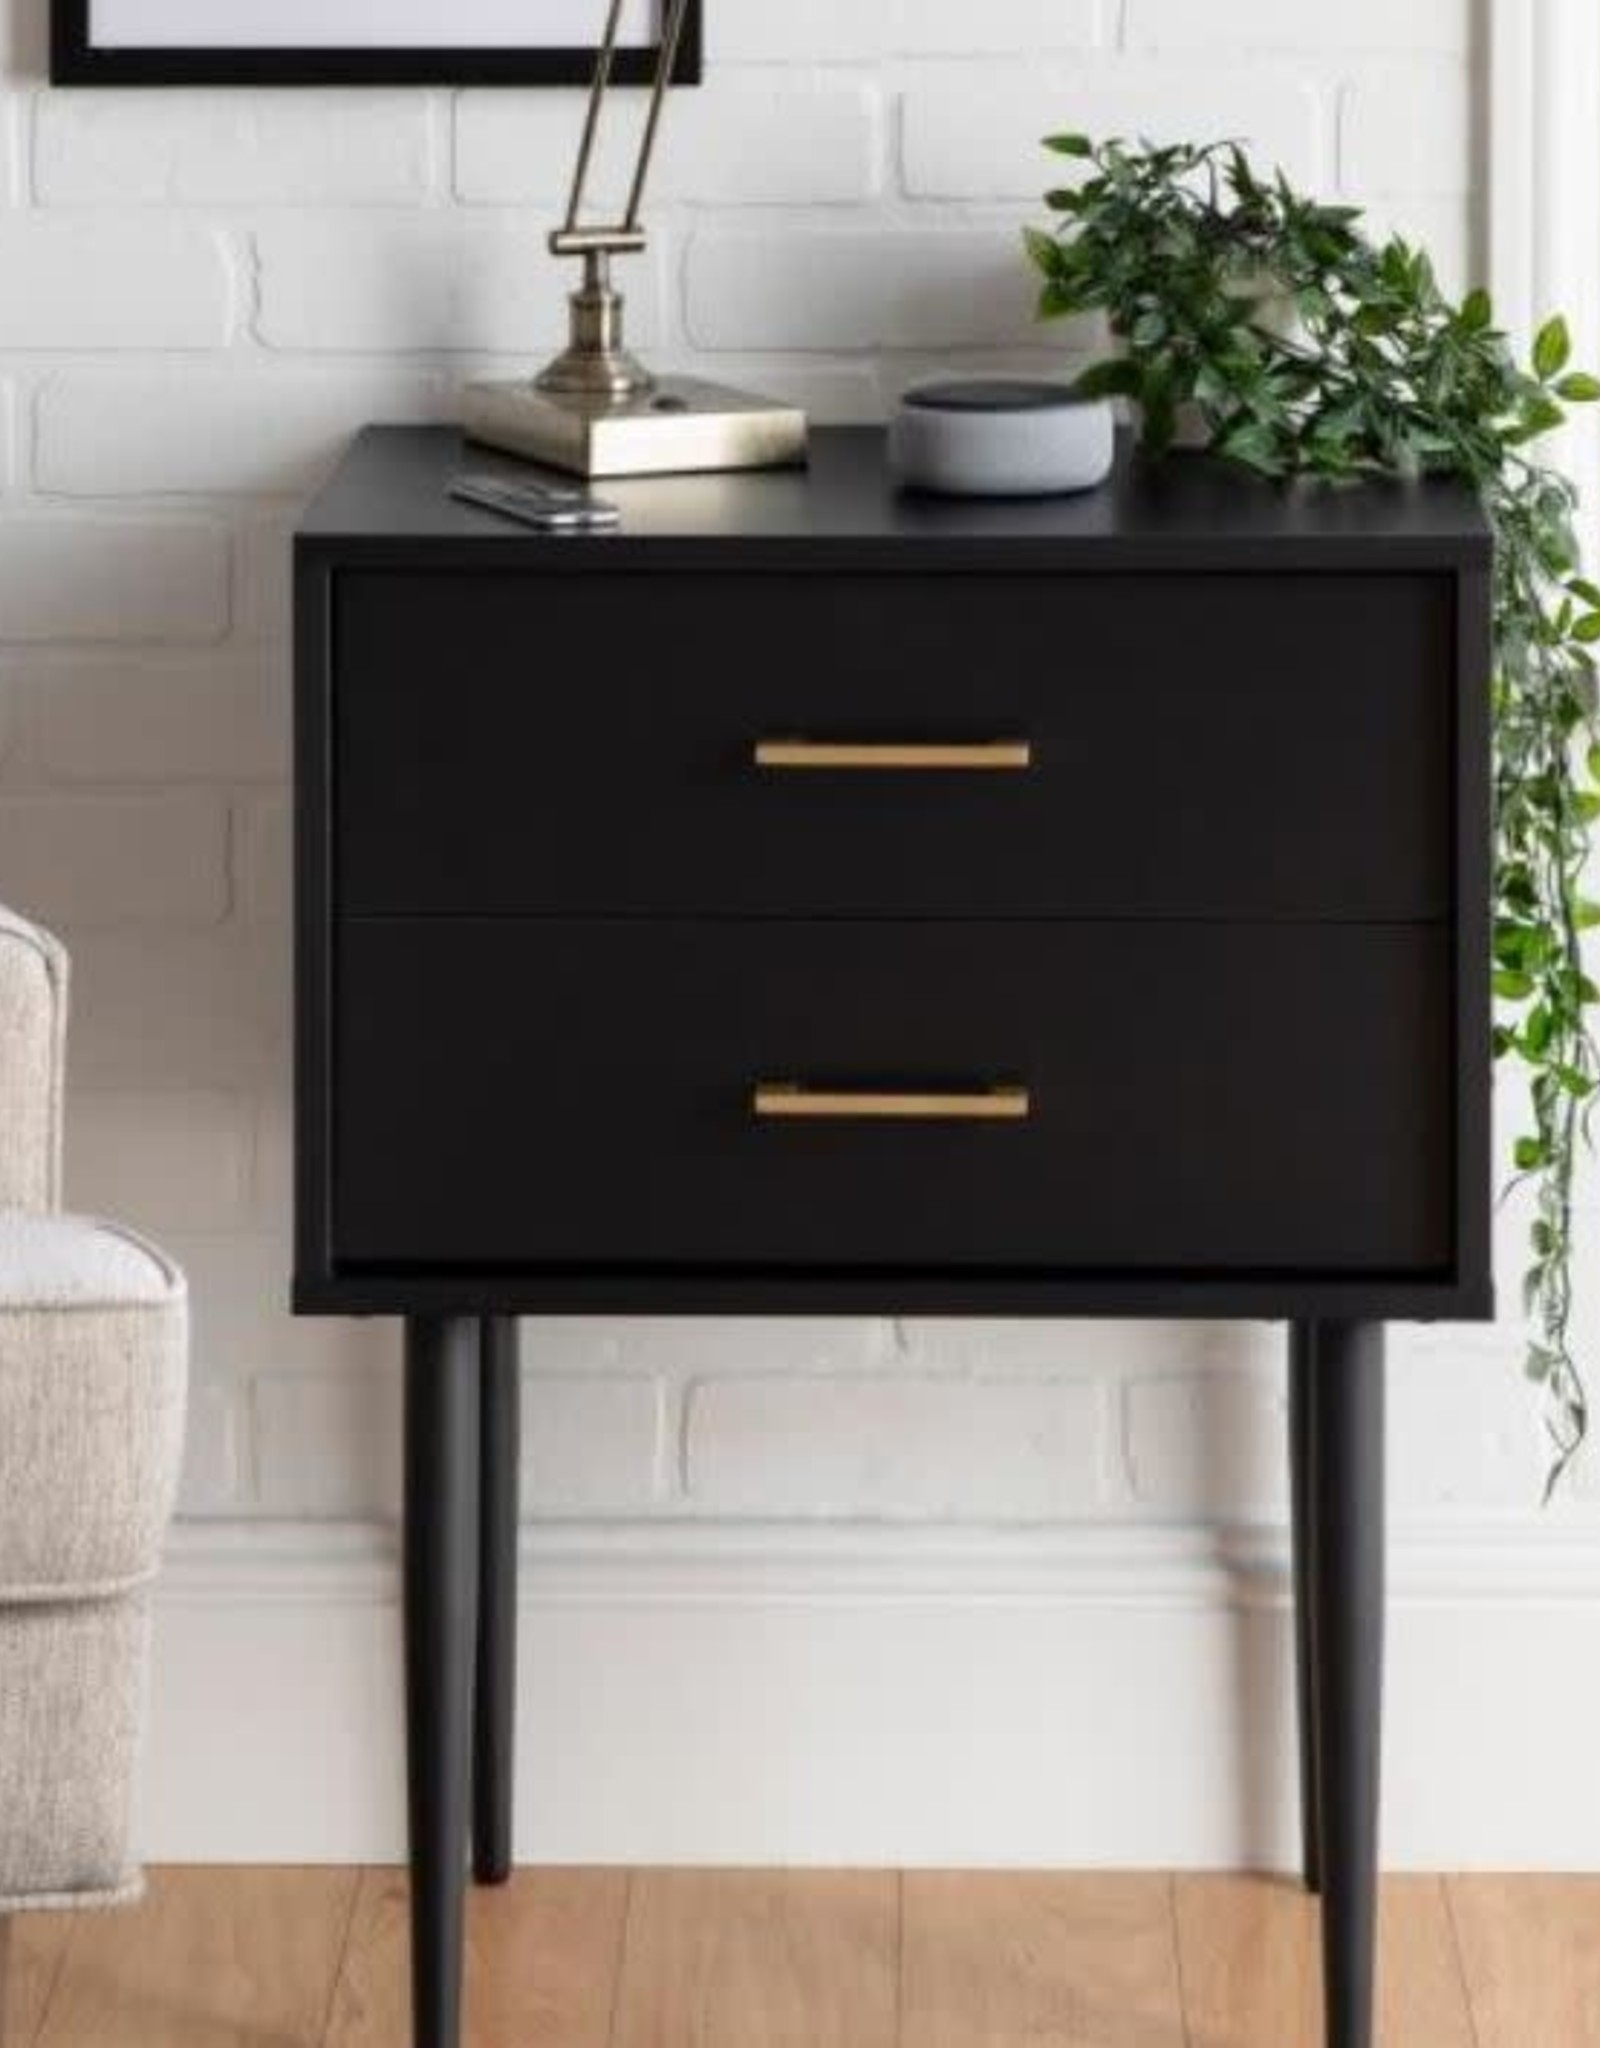 Walker Edison Furniture Company 2 Drawer Mid Century Modern Side Accent Table - Black